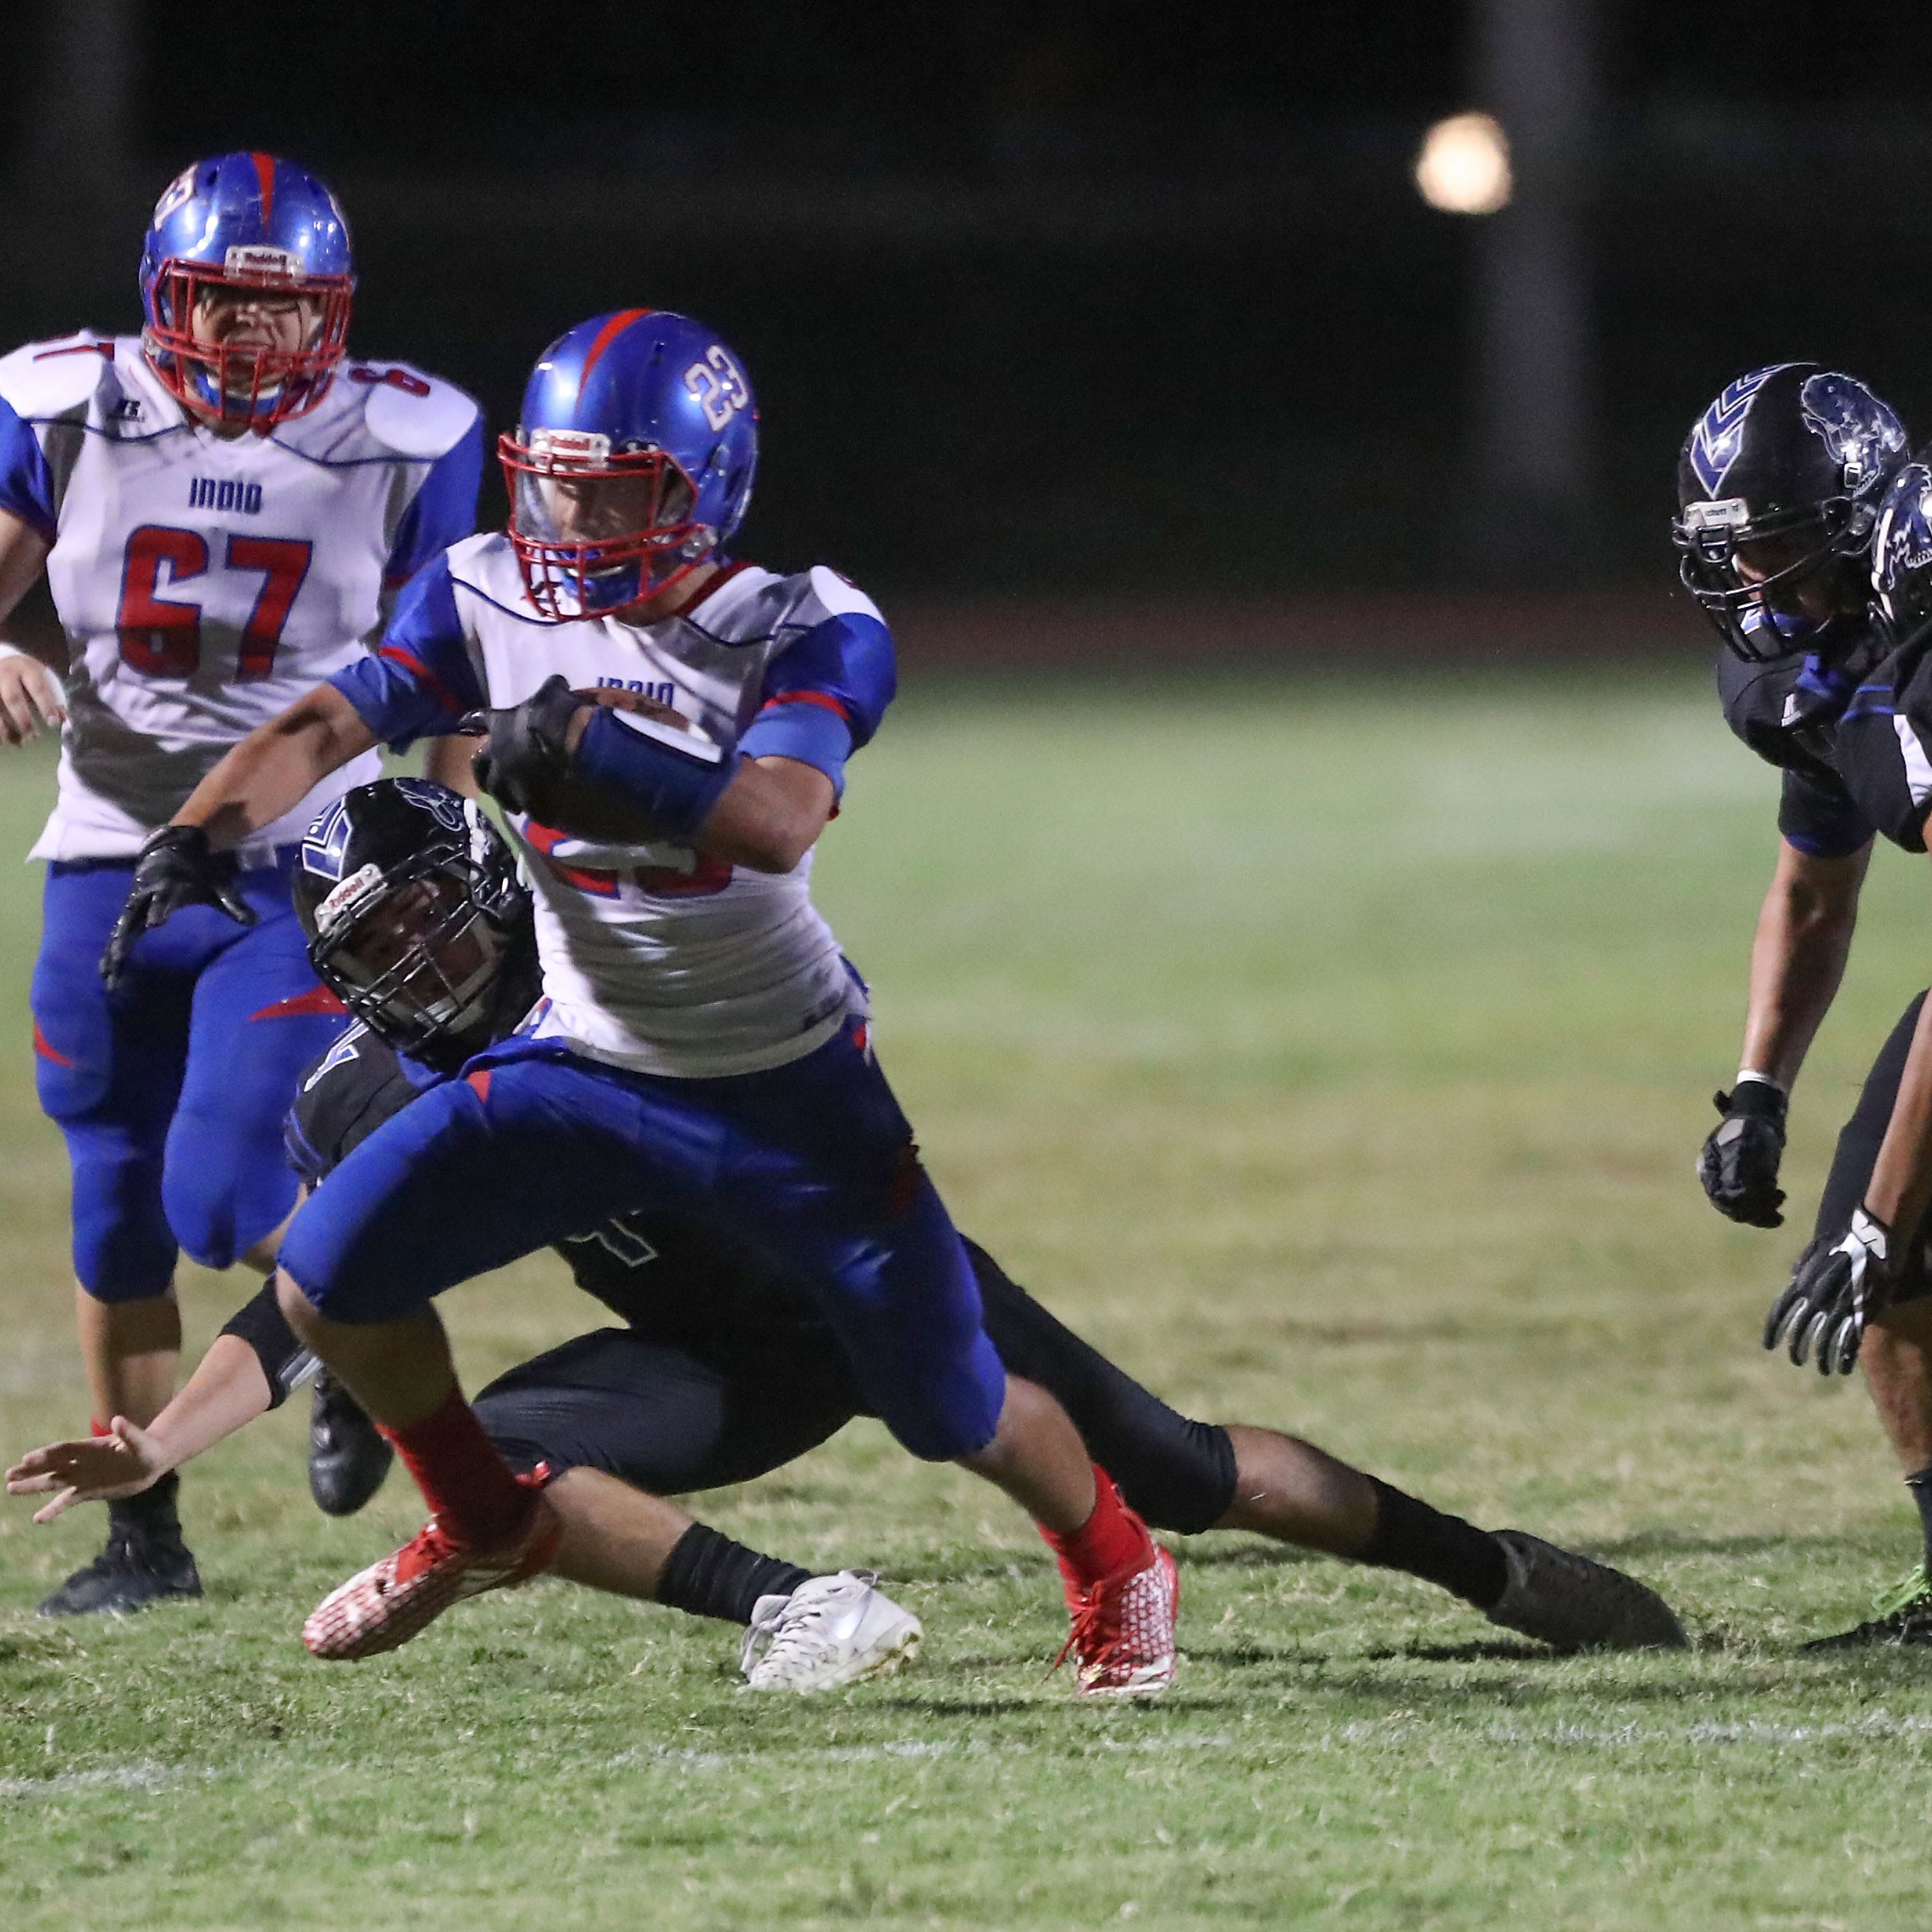 Intentional ground game: Indio, Desert Mirage love to ride their workhorse backs